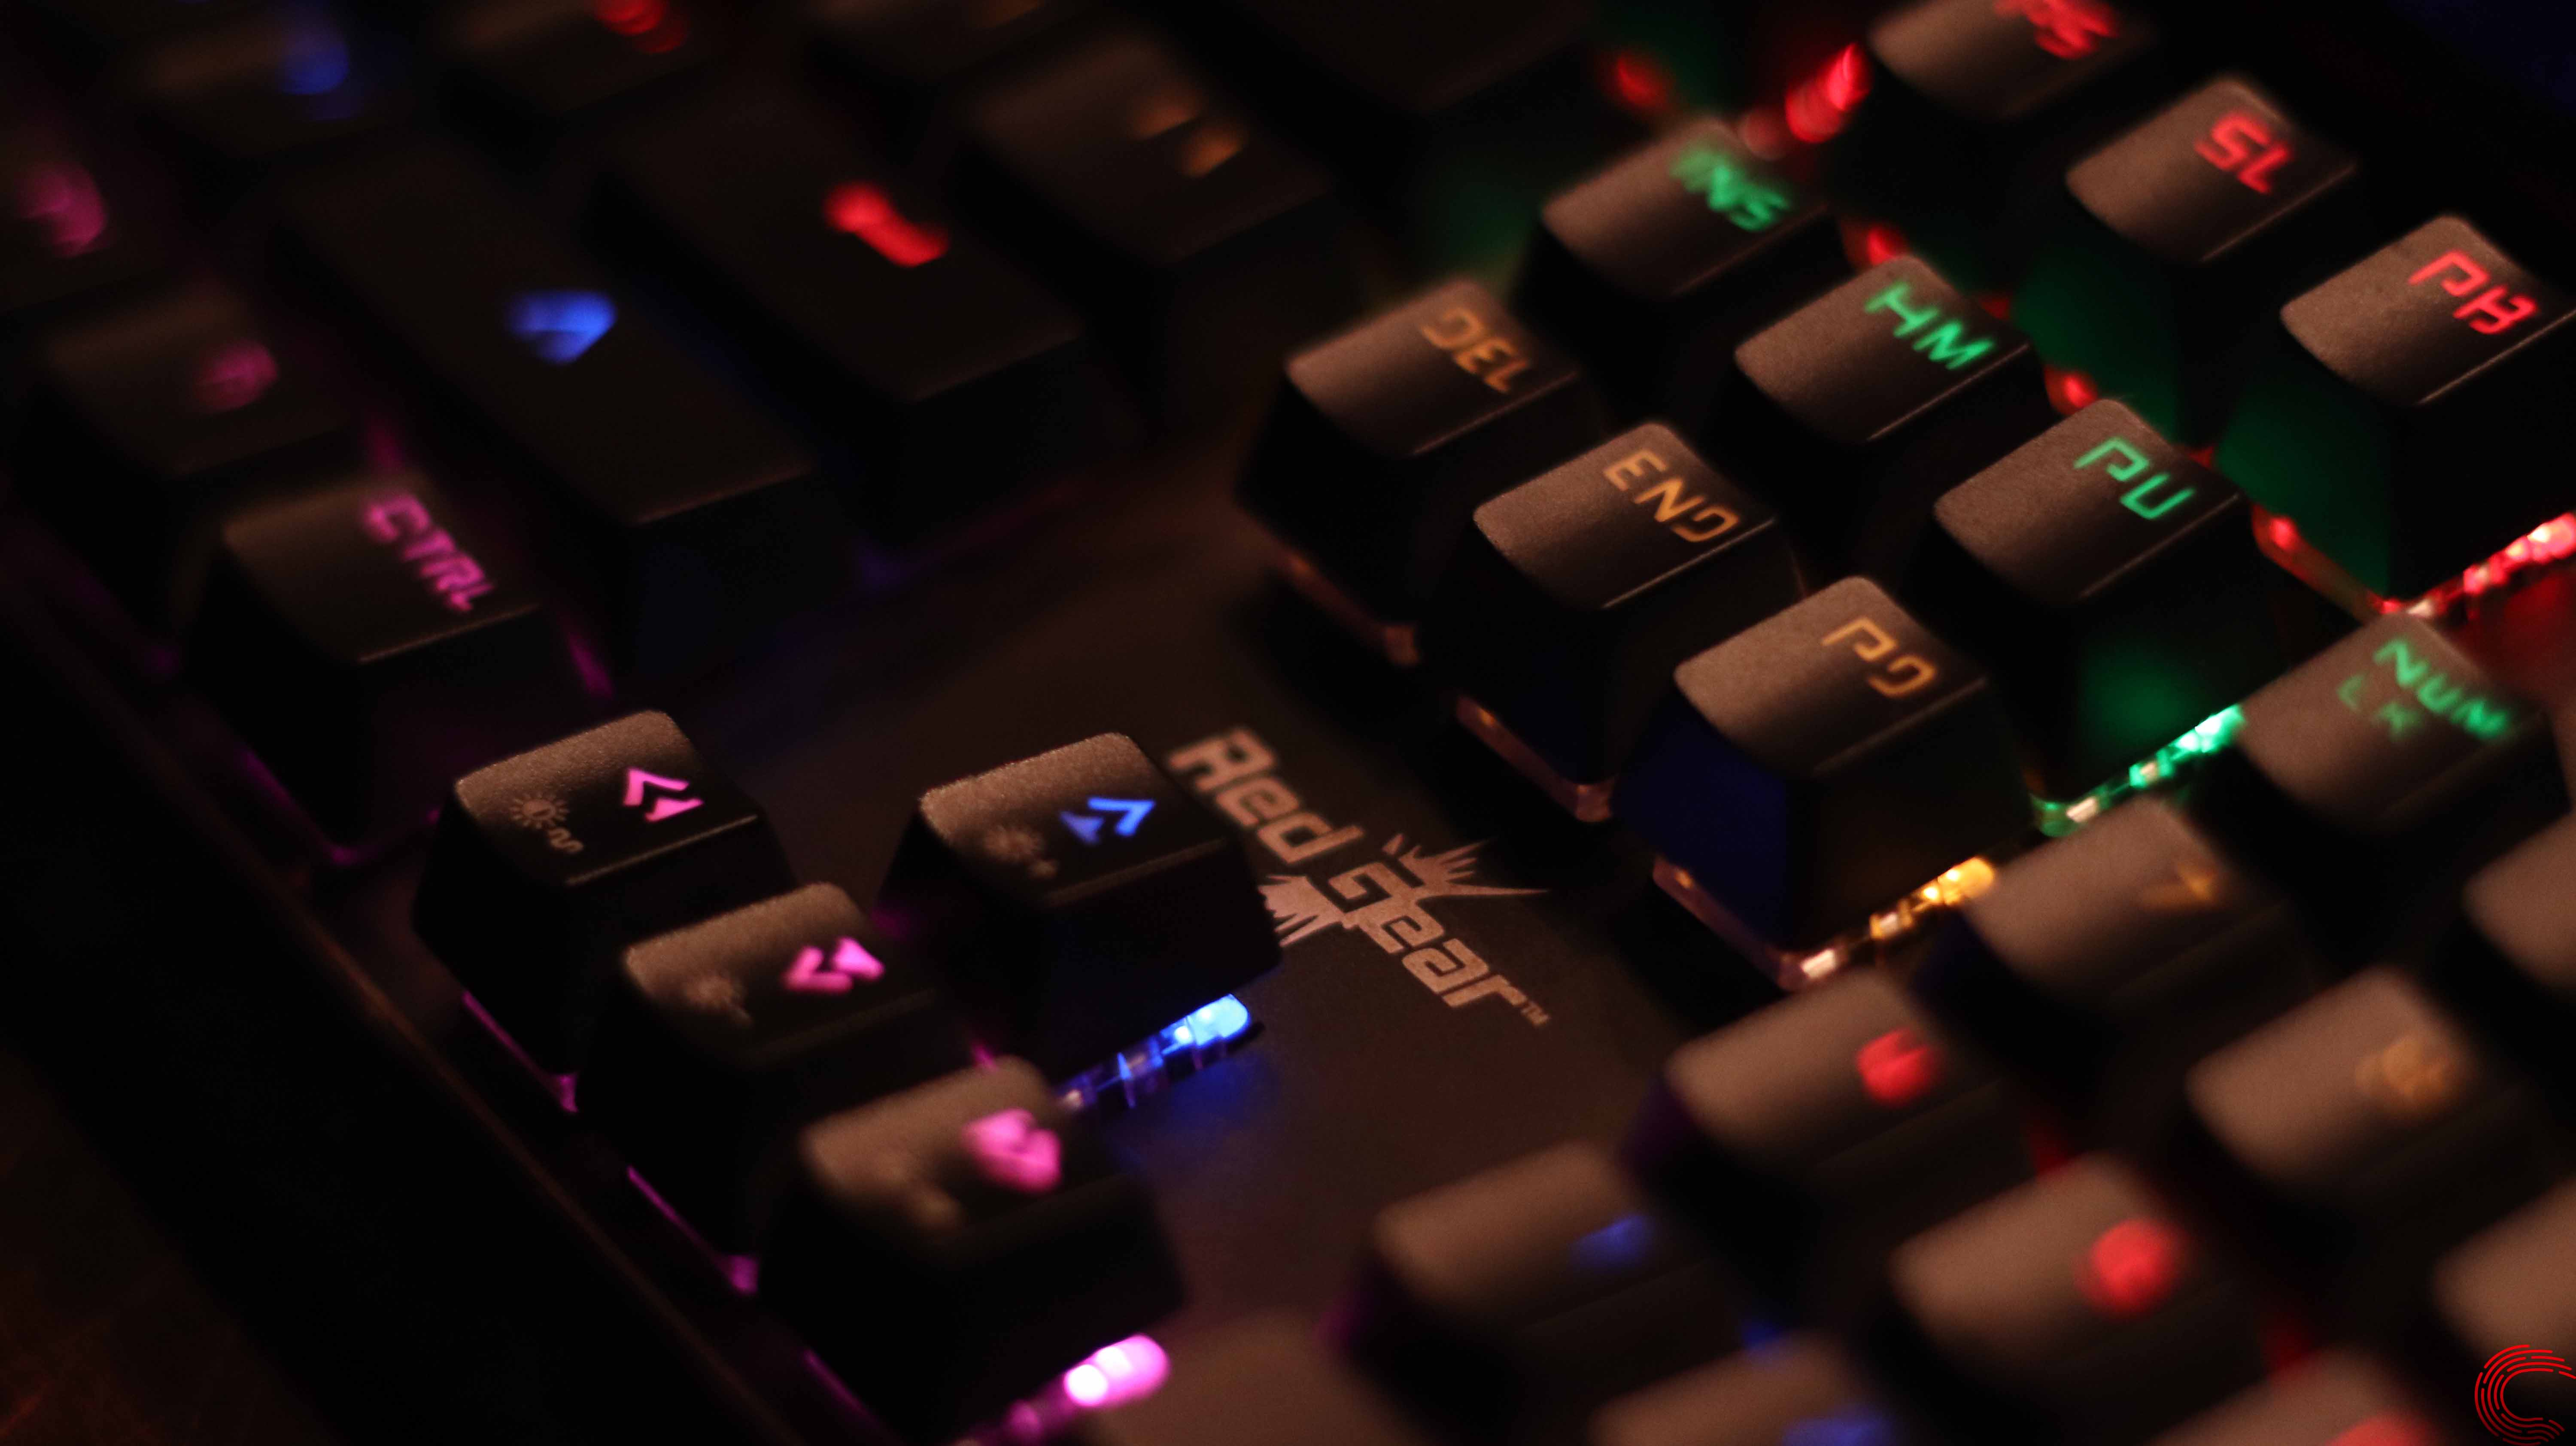 RedGear MK-881 Mechanical Keyboard review: The best in class?